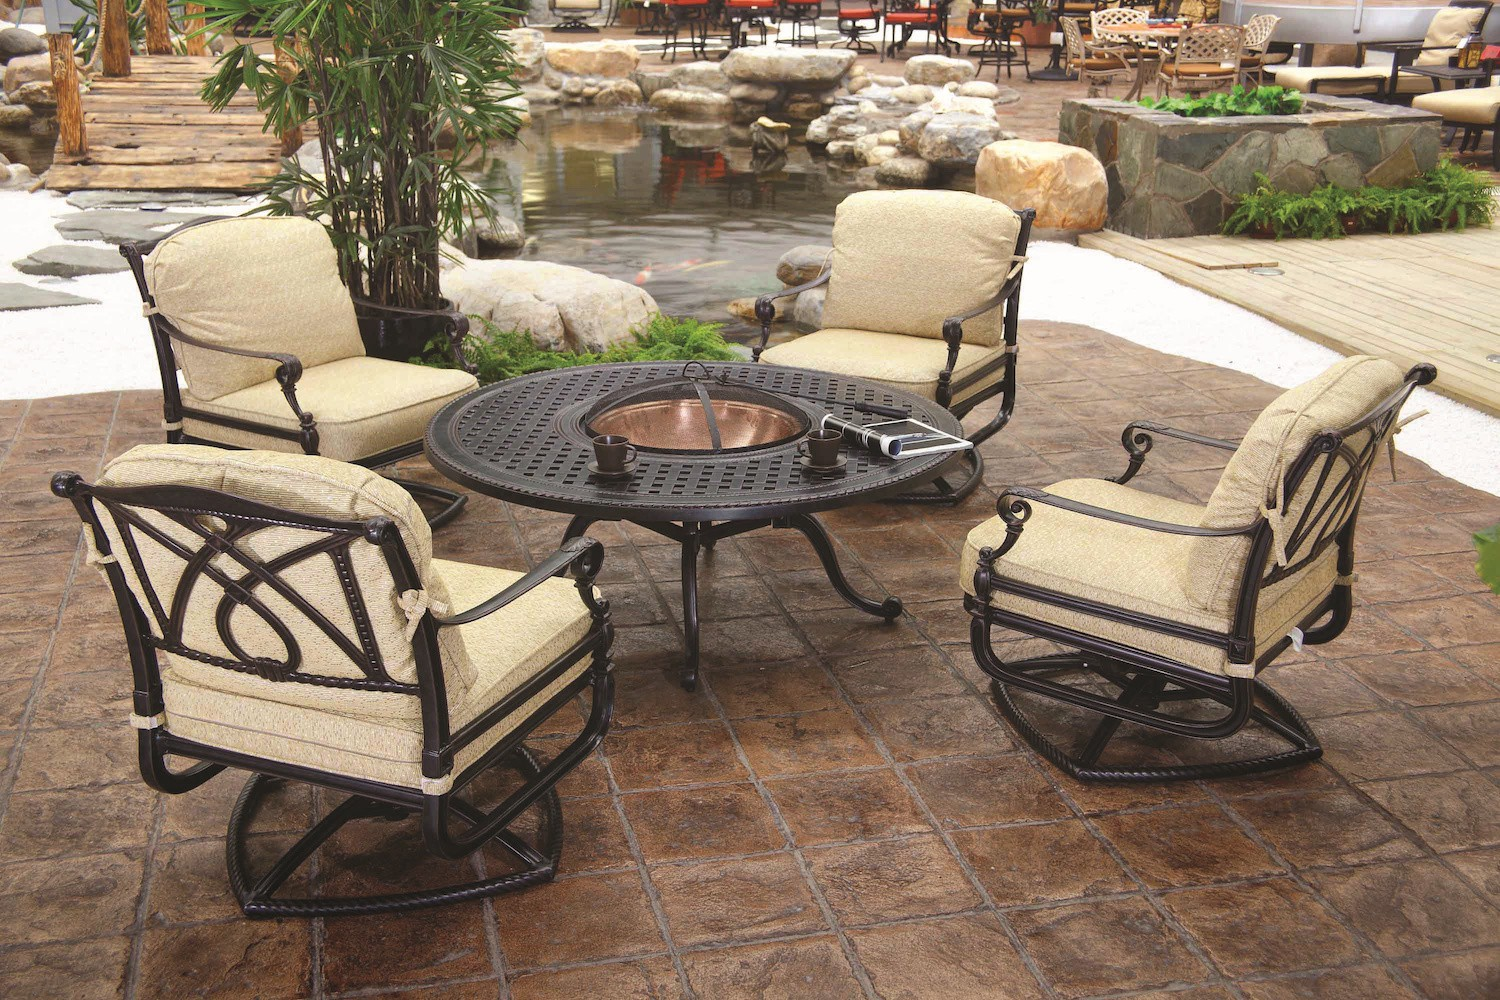 Grand Terrace Wood Fire Pit Location